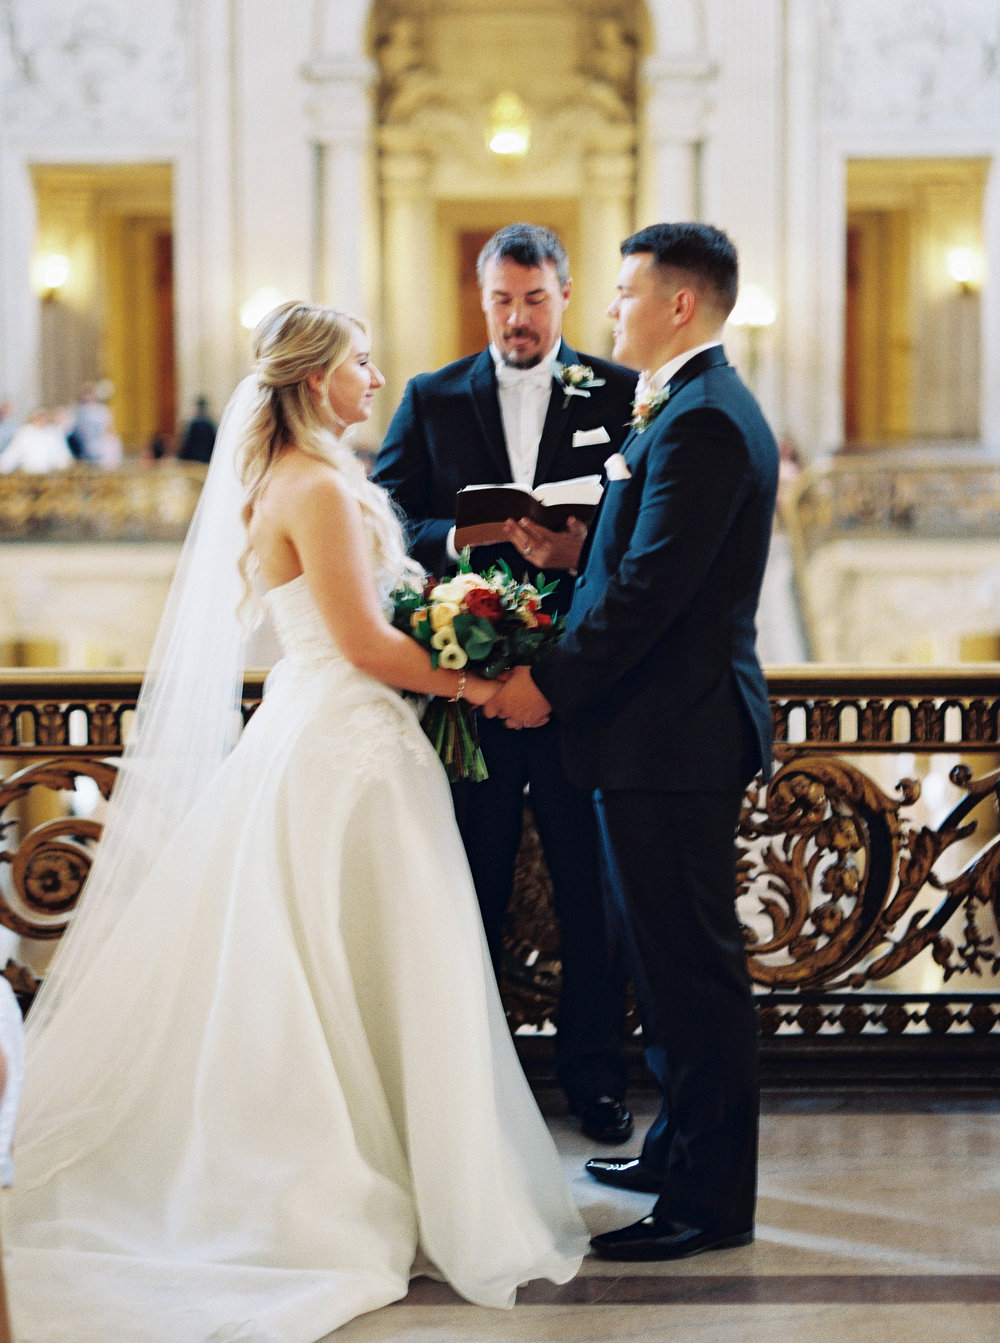 DennisRoyCoronel_Photography_SanFranciscoCityHall_Wedding-30.jpg